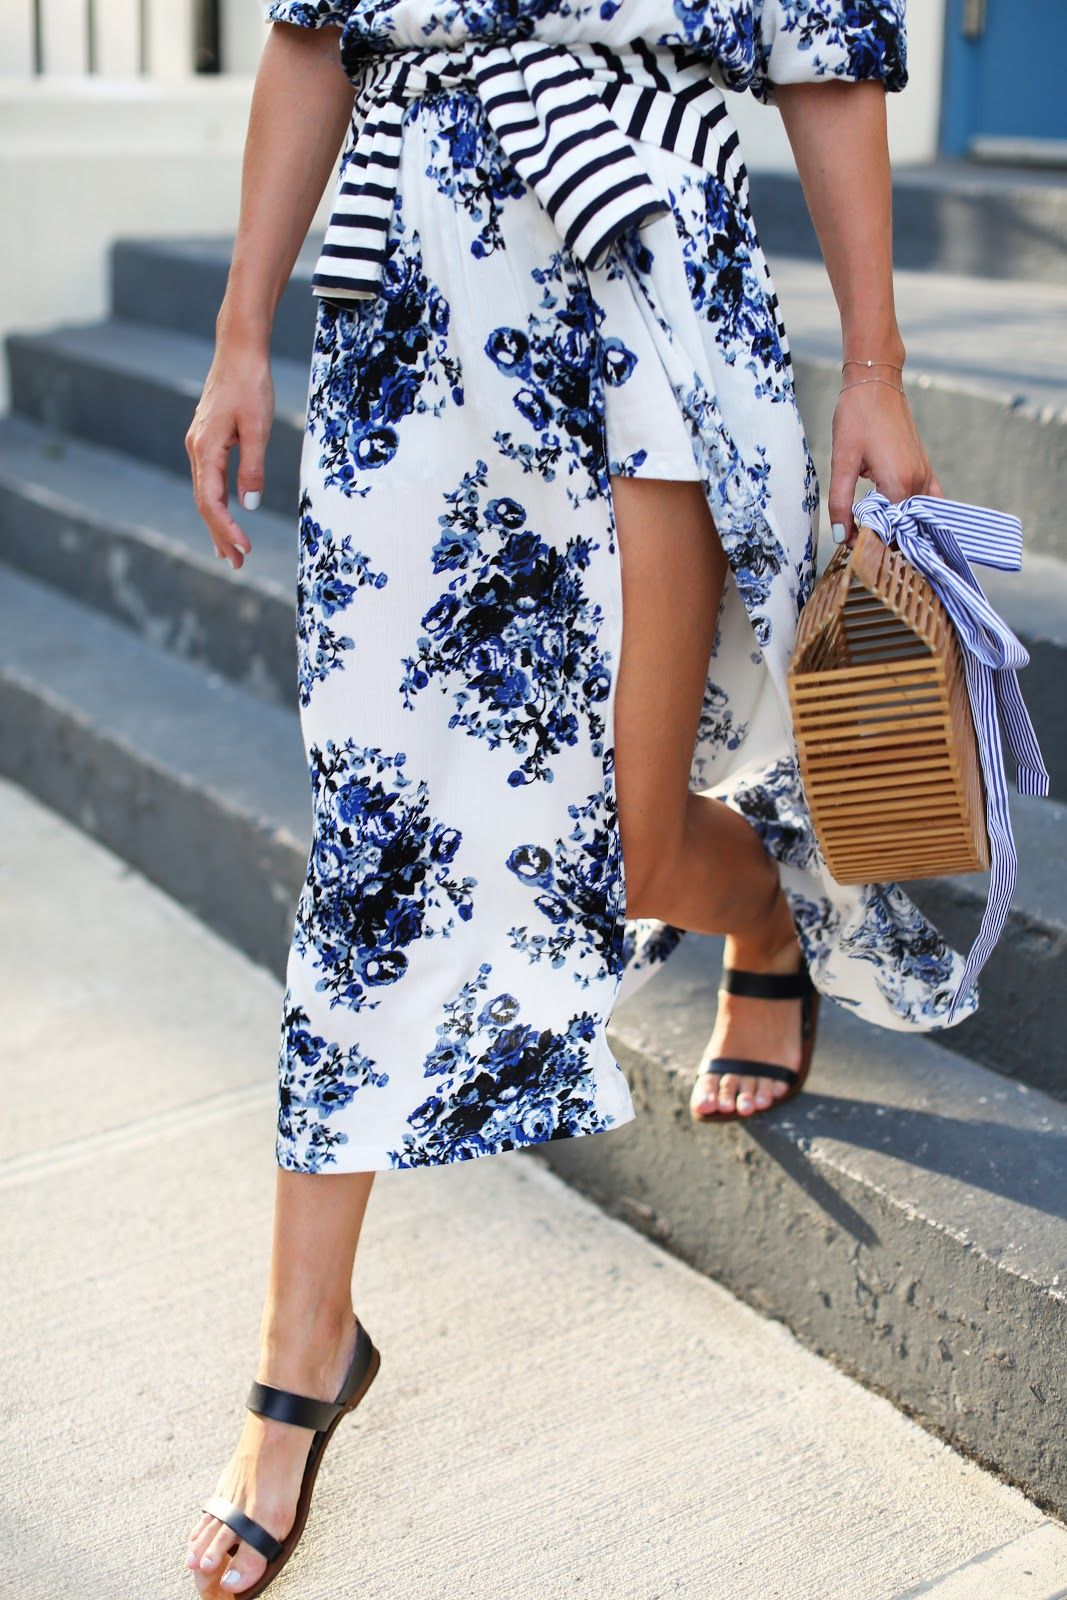 summer blues atlantic pacific street fashion pinterest outfit ideen sommer outfit. Black Bedroom Furniture Sets. Home Design Ideas